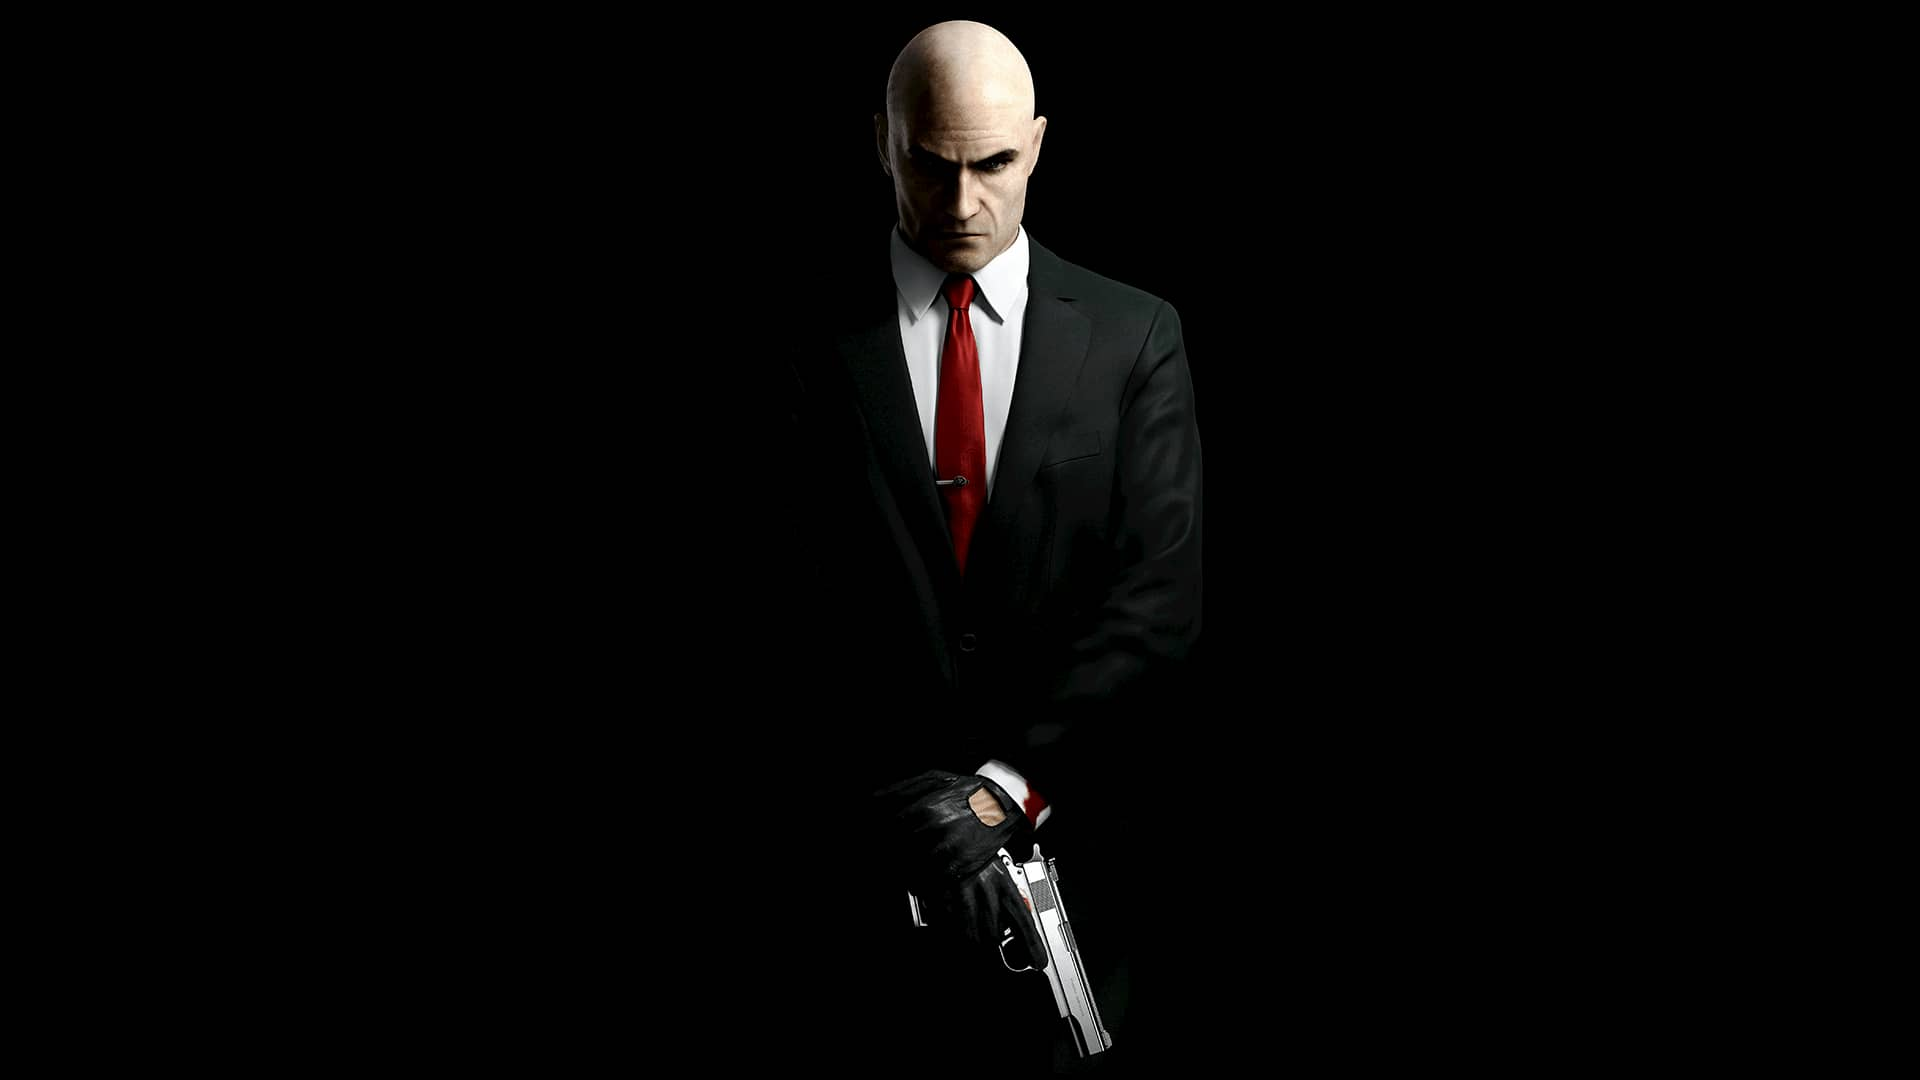 Hitman Games with Agent 47 in order